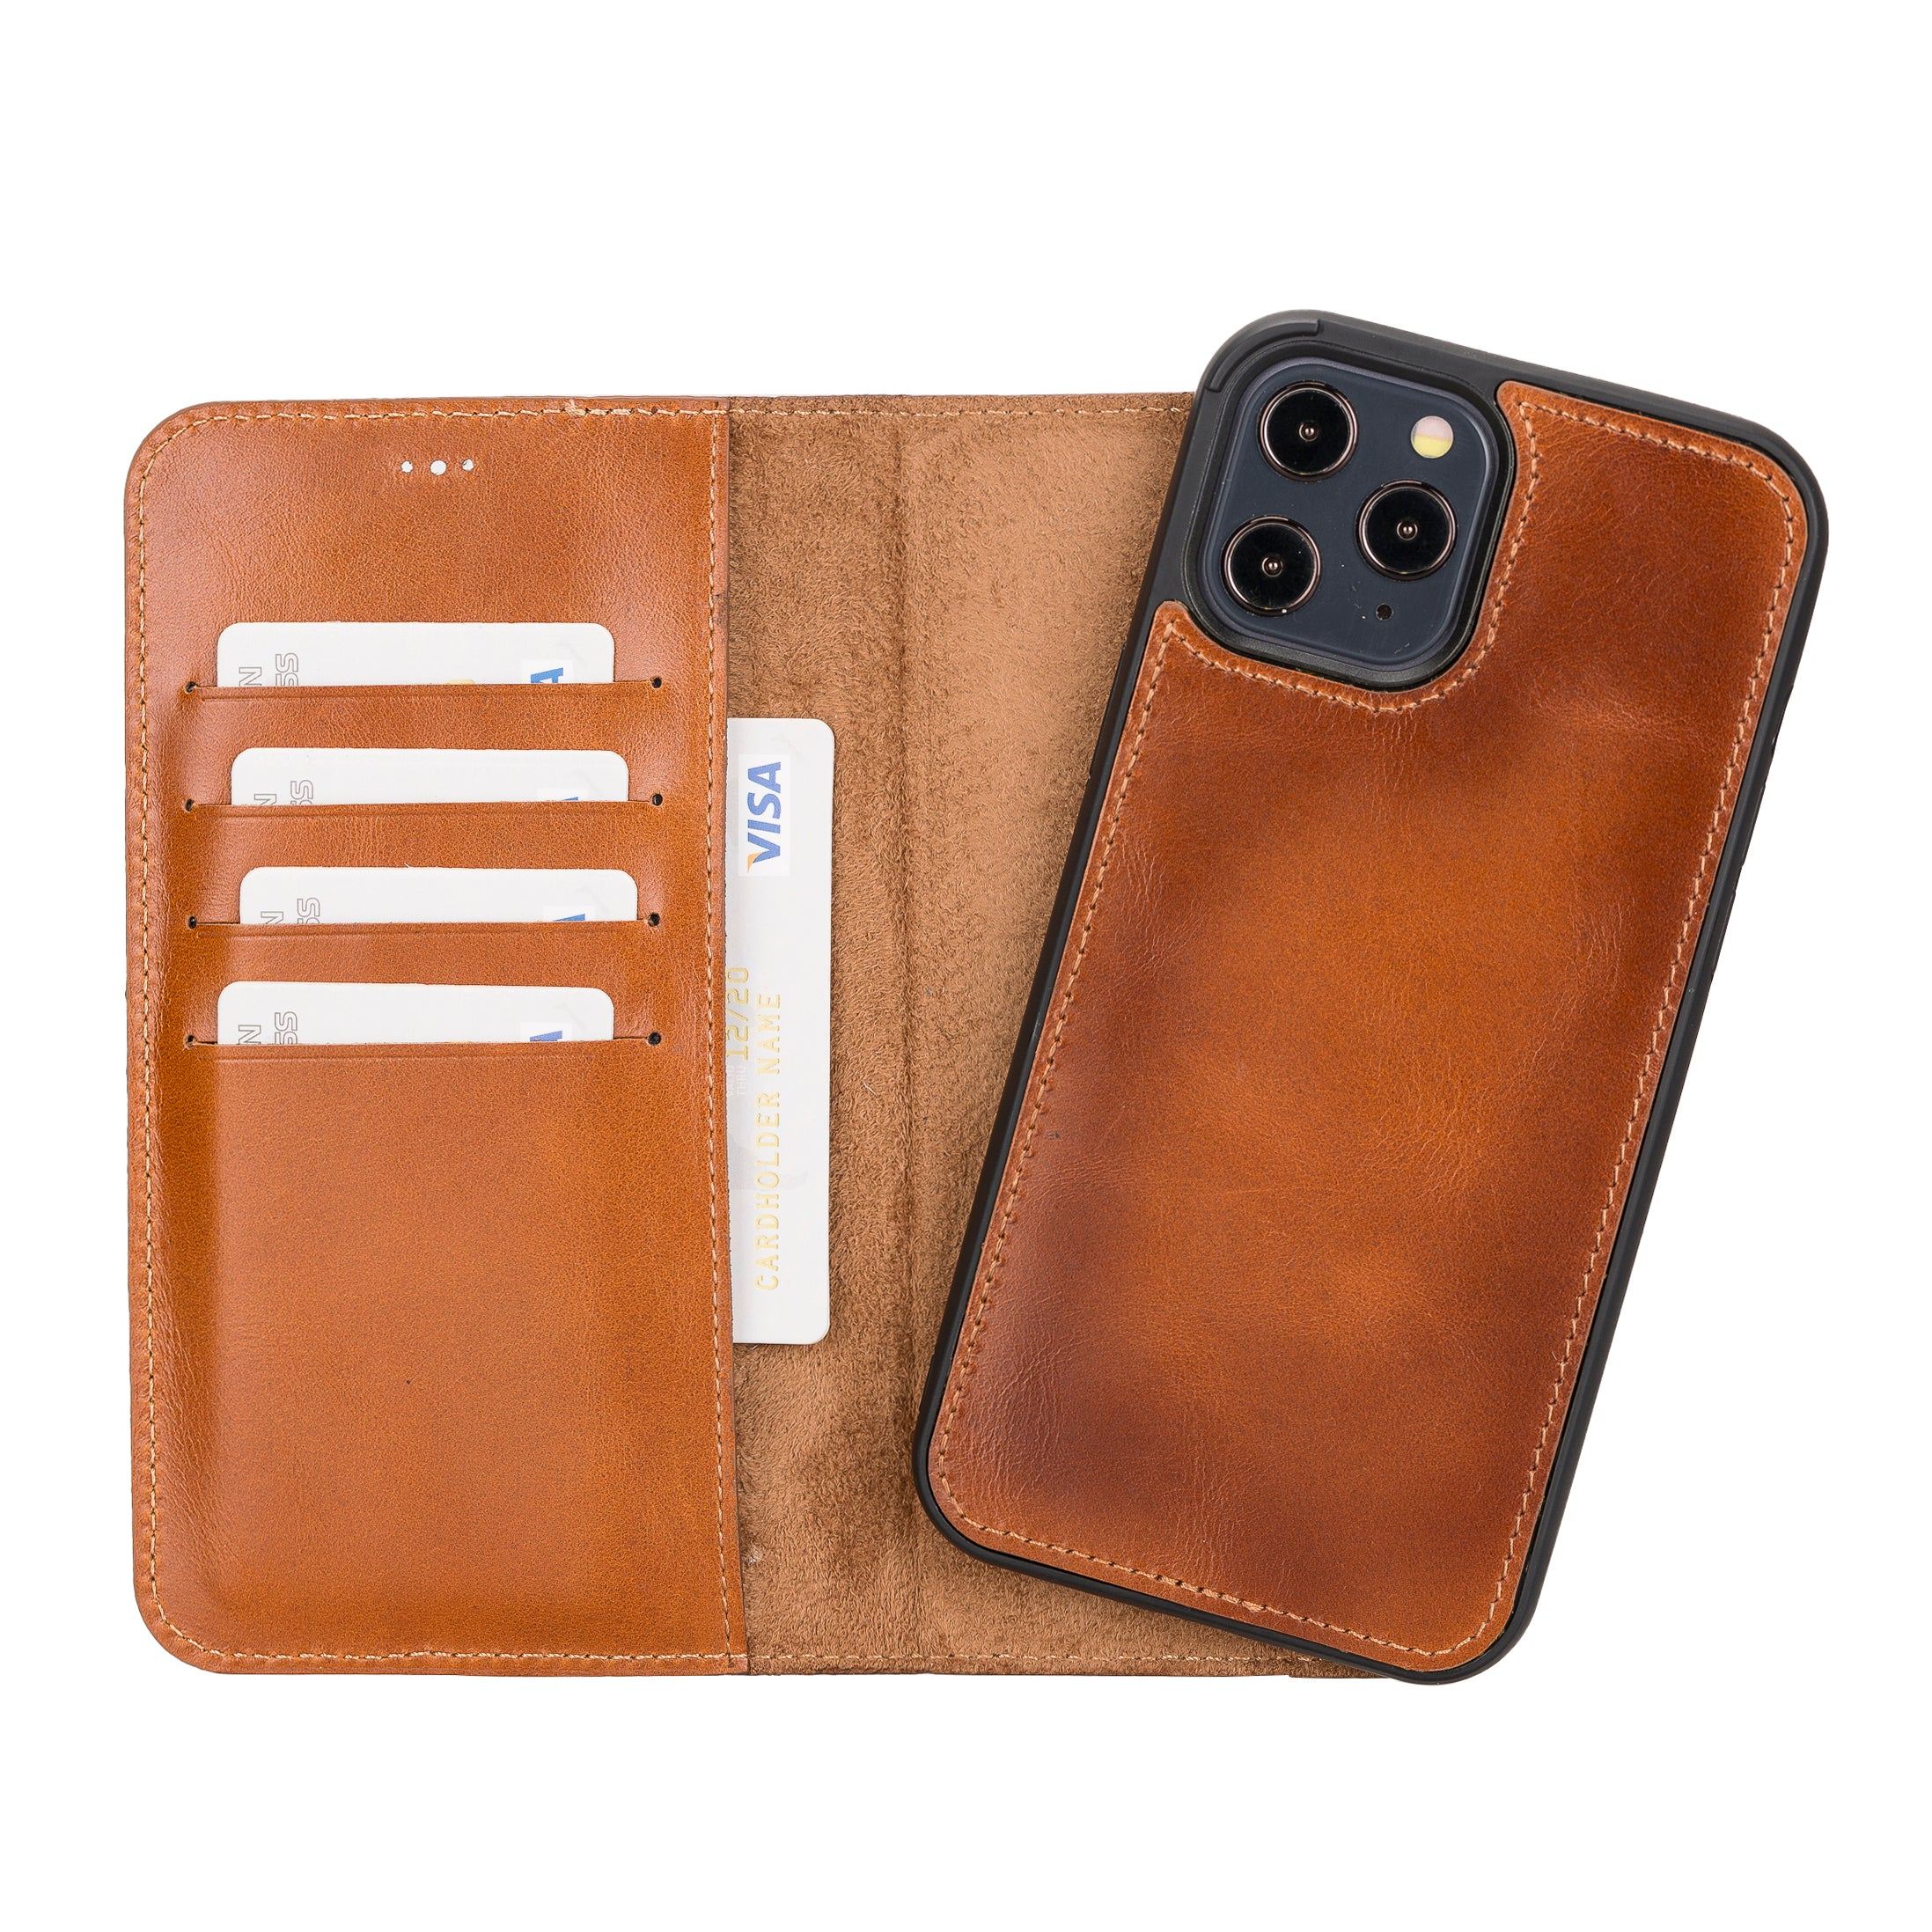 "Magic Magnetic Detachable Leather Wallet Case for iPhone 12 Pro Max (6.7"") - EFFECT BROWN - saracleather"